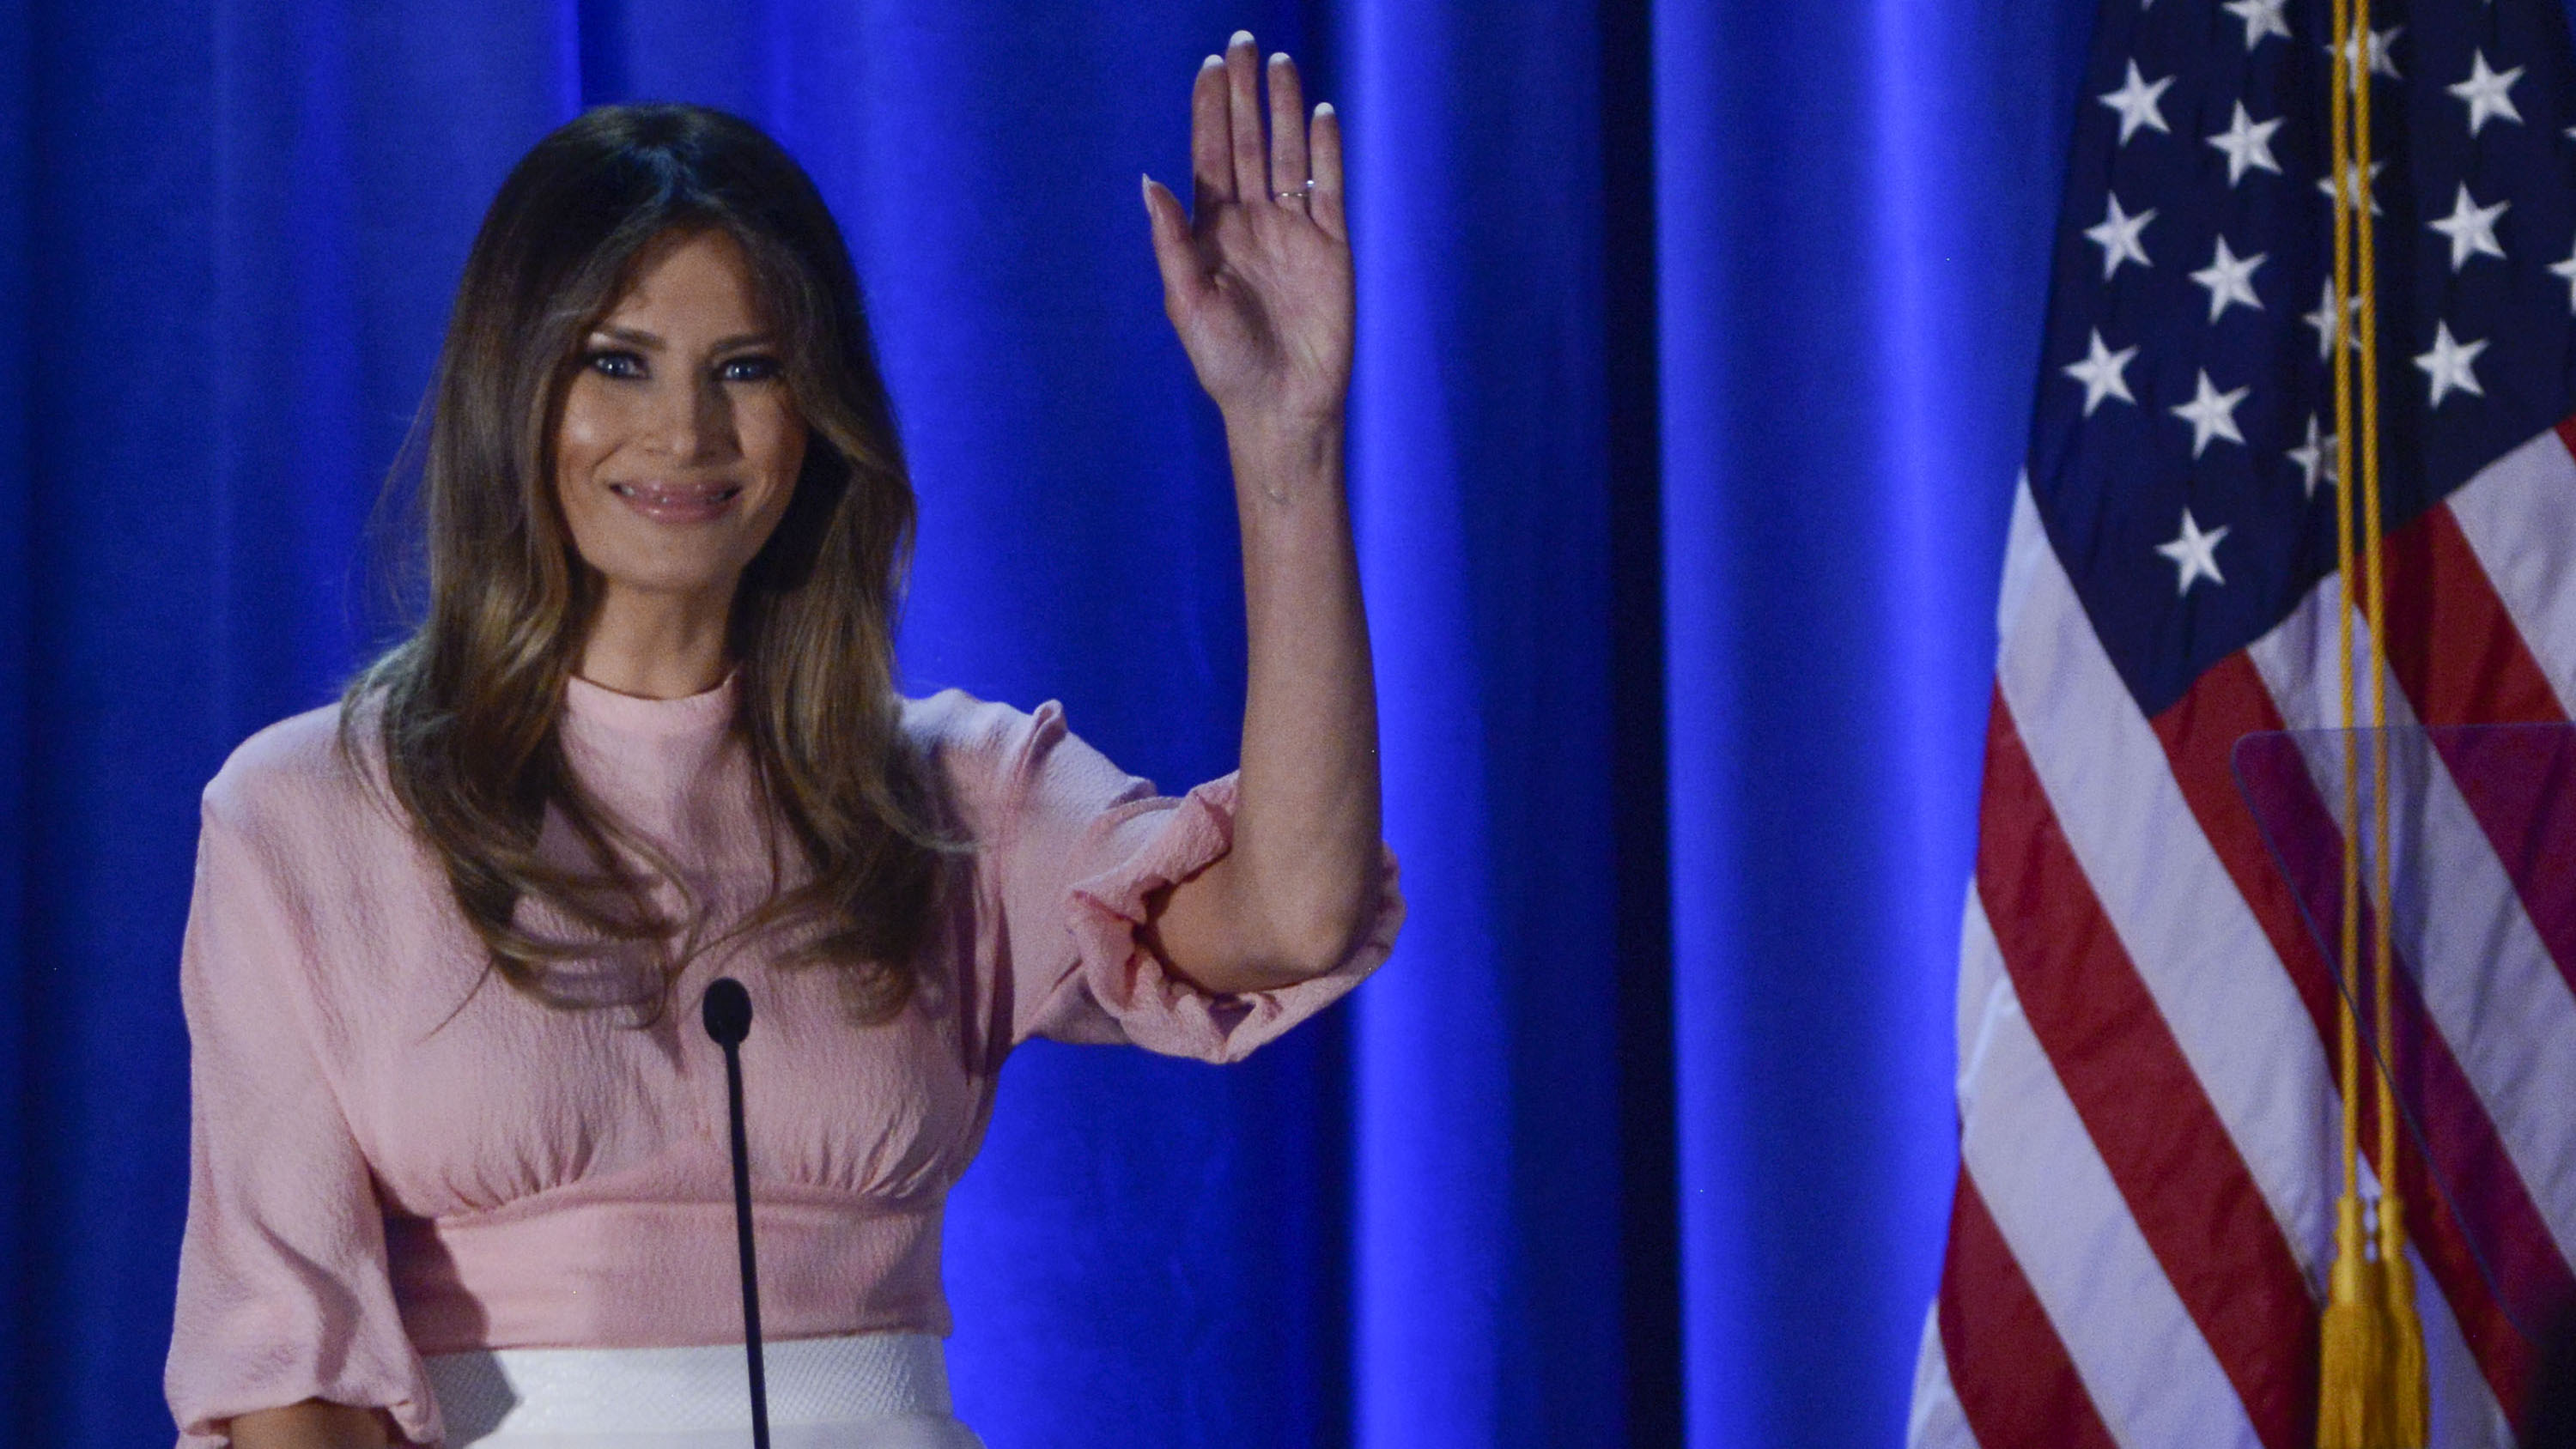 Calvin Klein would dress Melania Trump